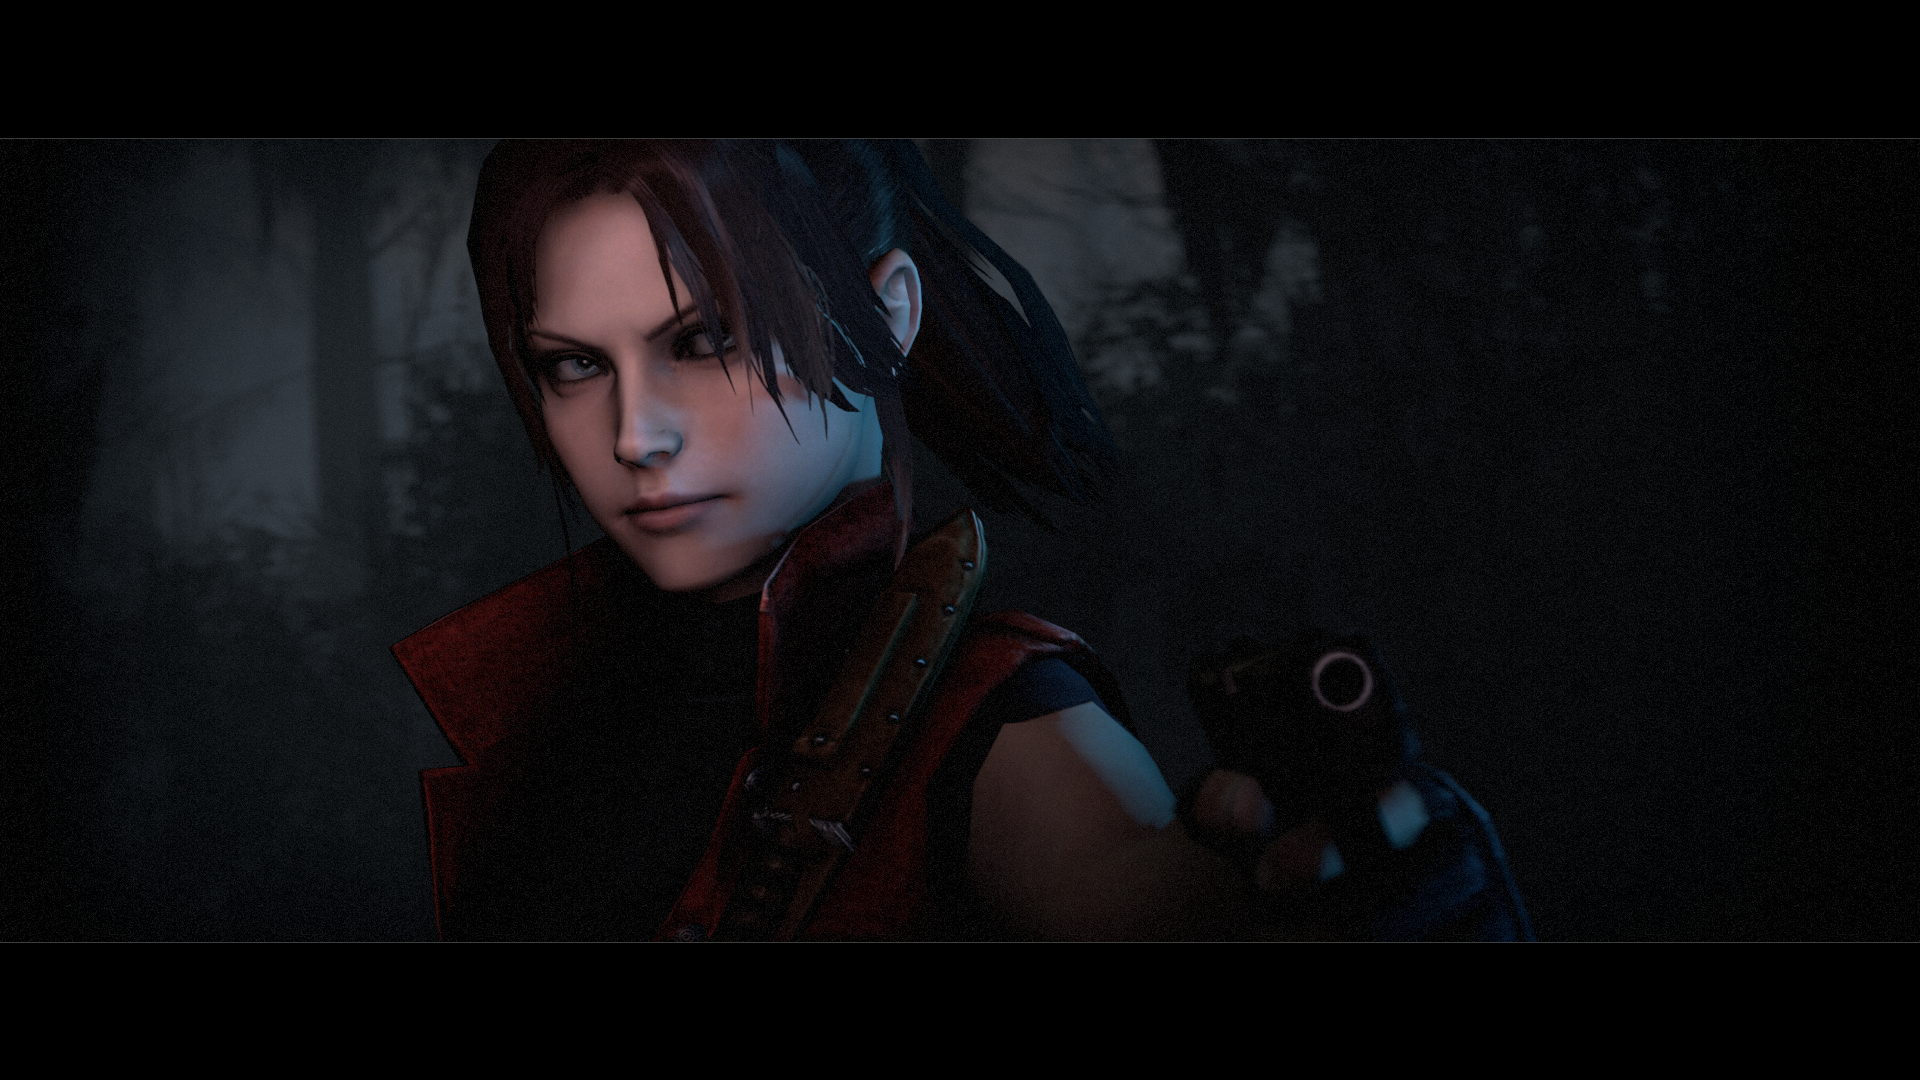 claire_redfield___resident_evil_2_by_lemon100-d8qrcww